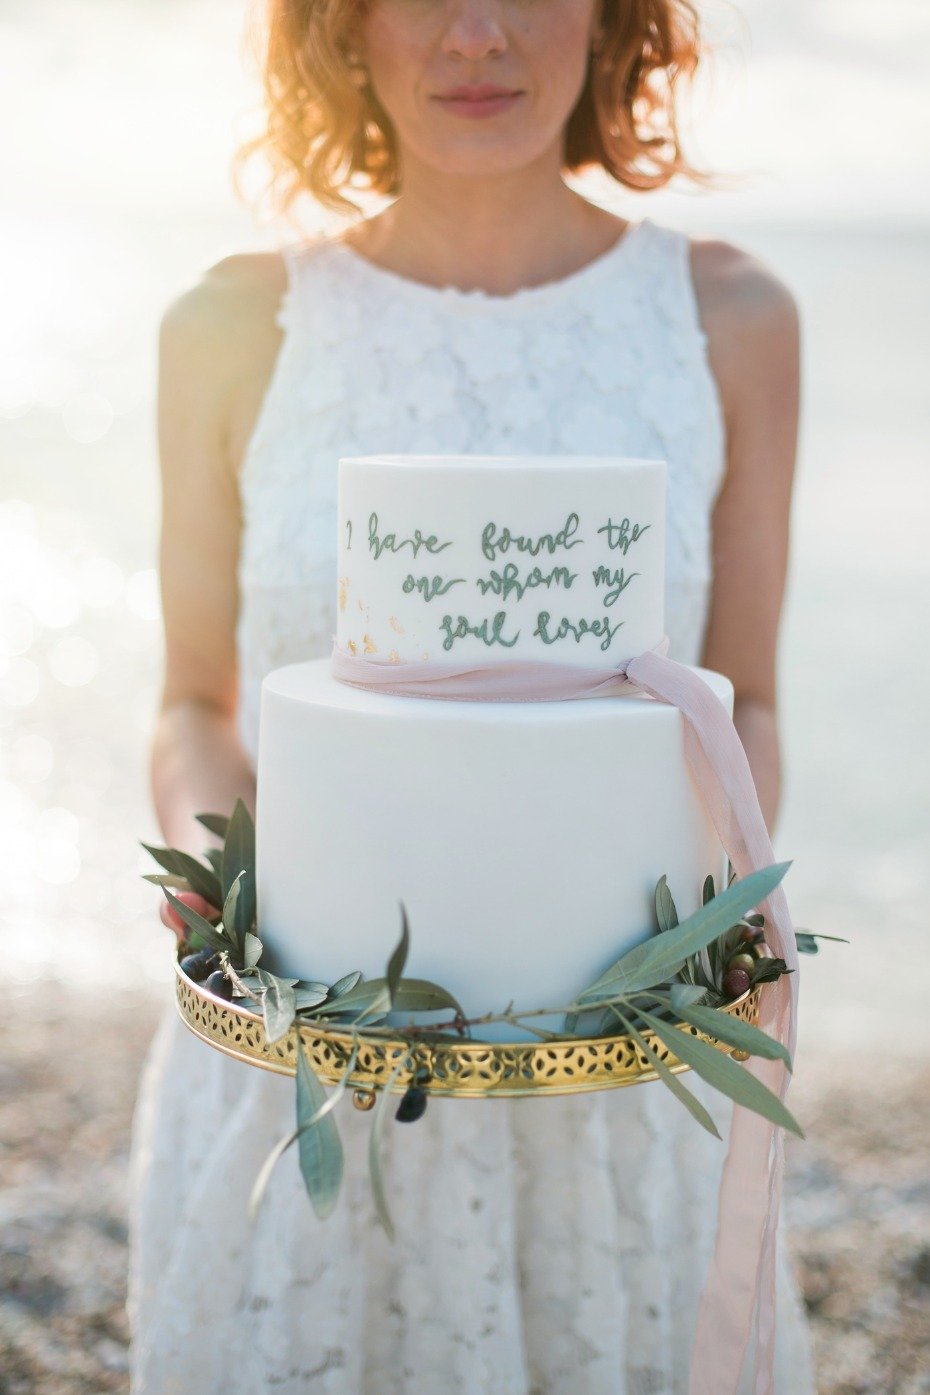 White wedding cake with love quote